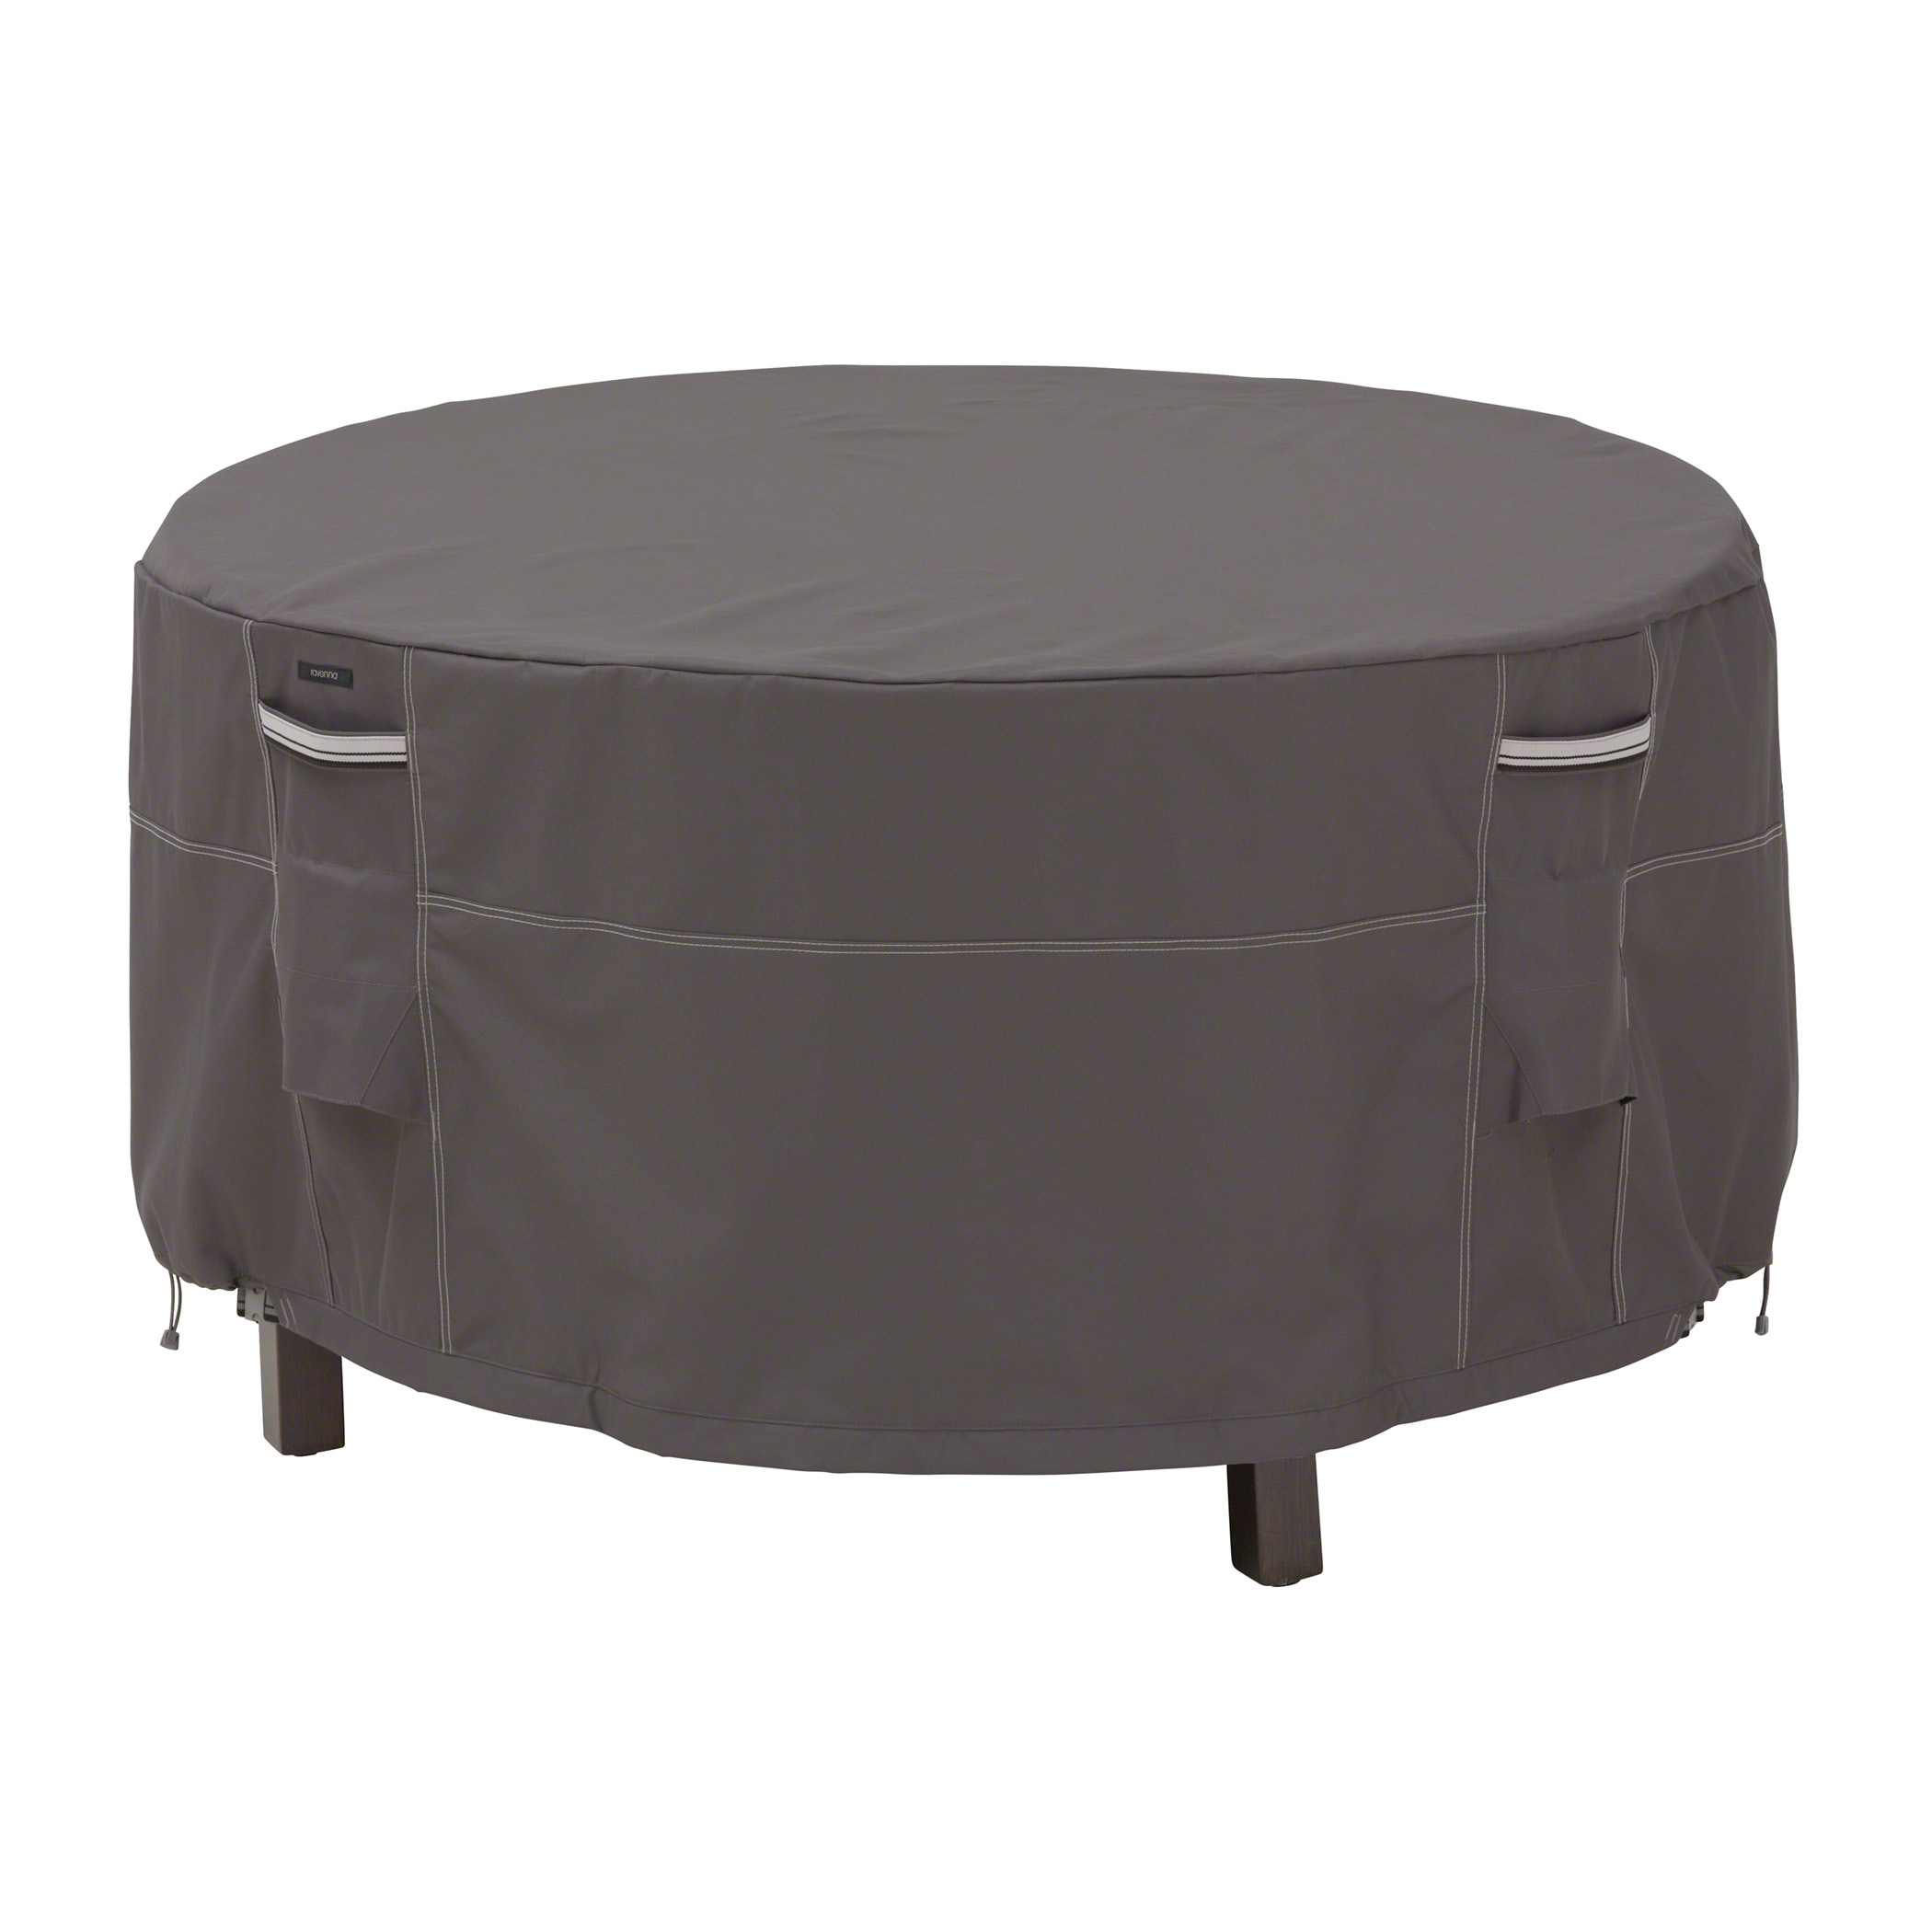 ... Patio Furniture Set Covers Patio Table and Chair Cover - Round Medium